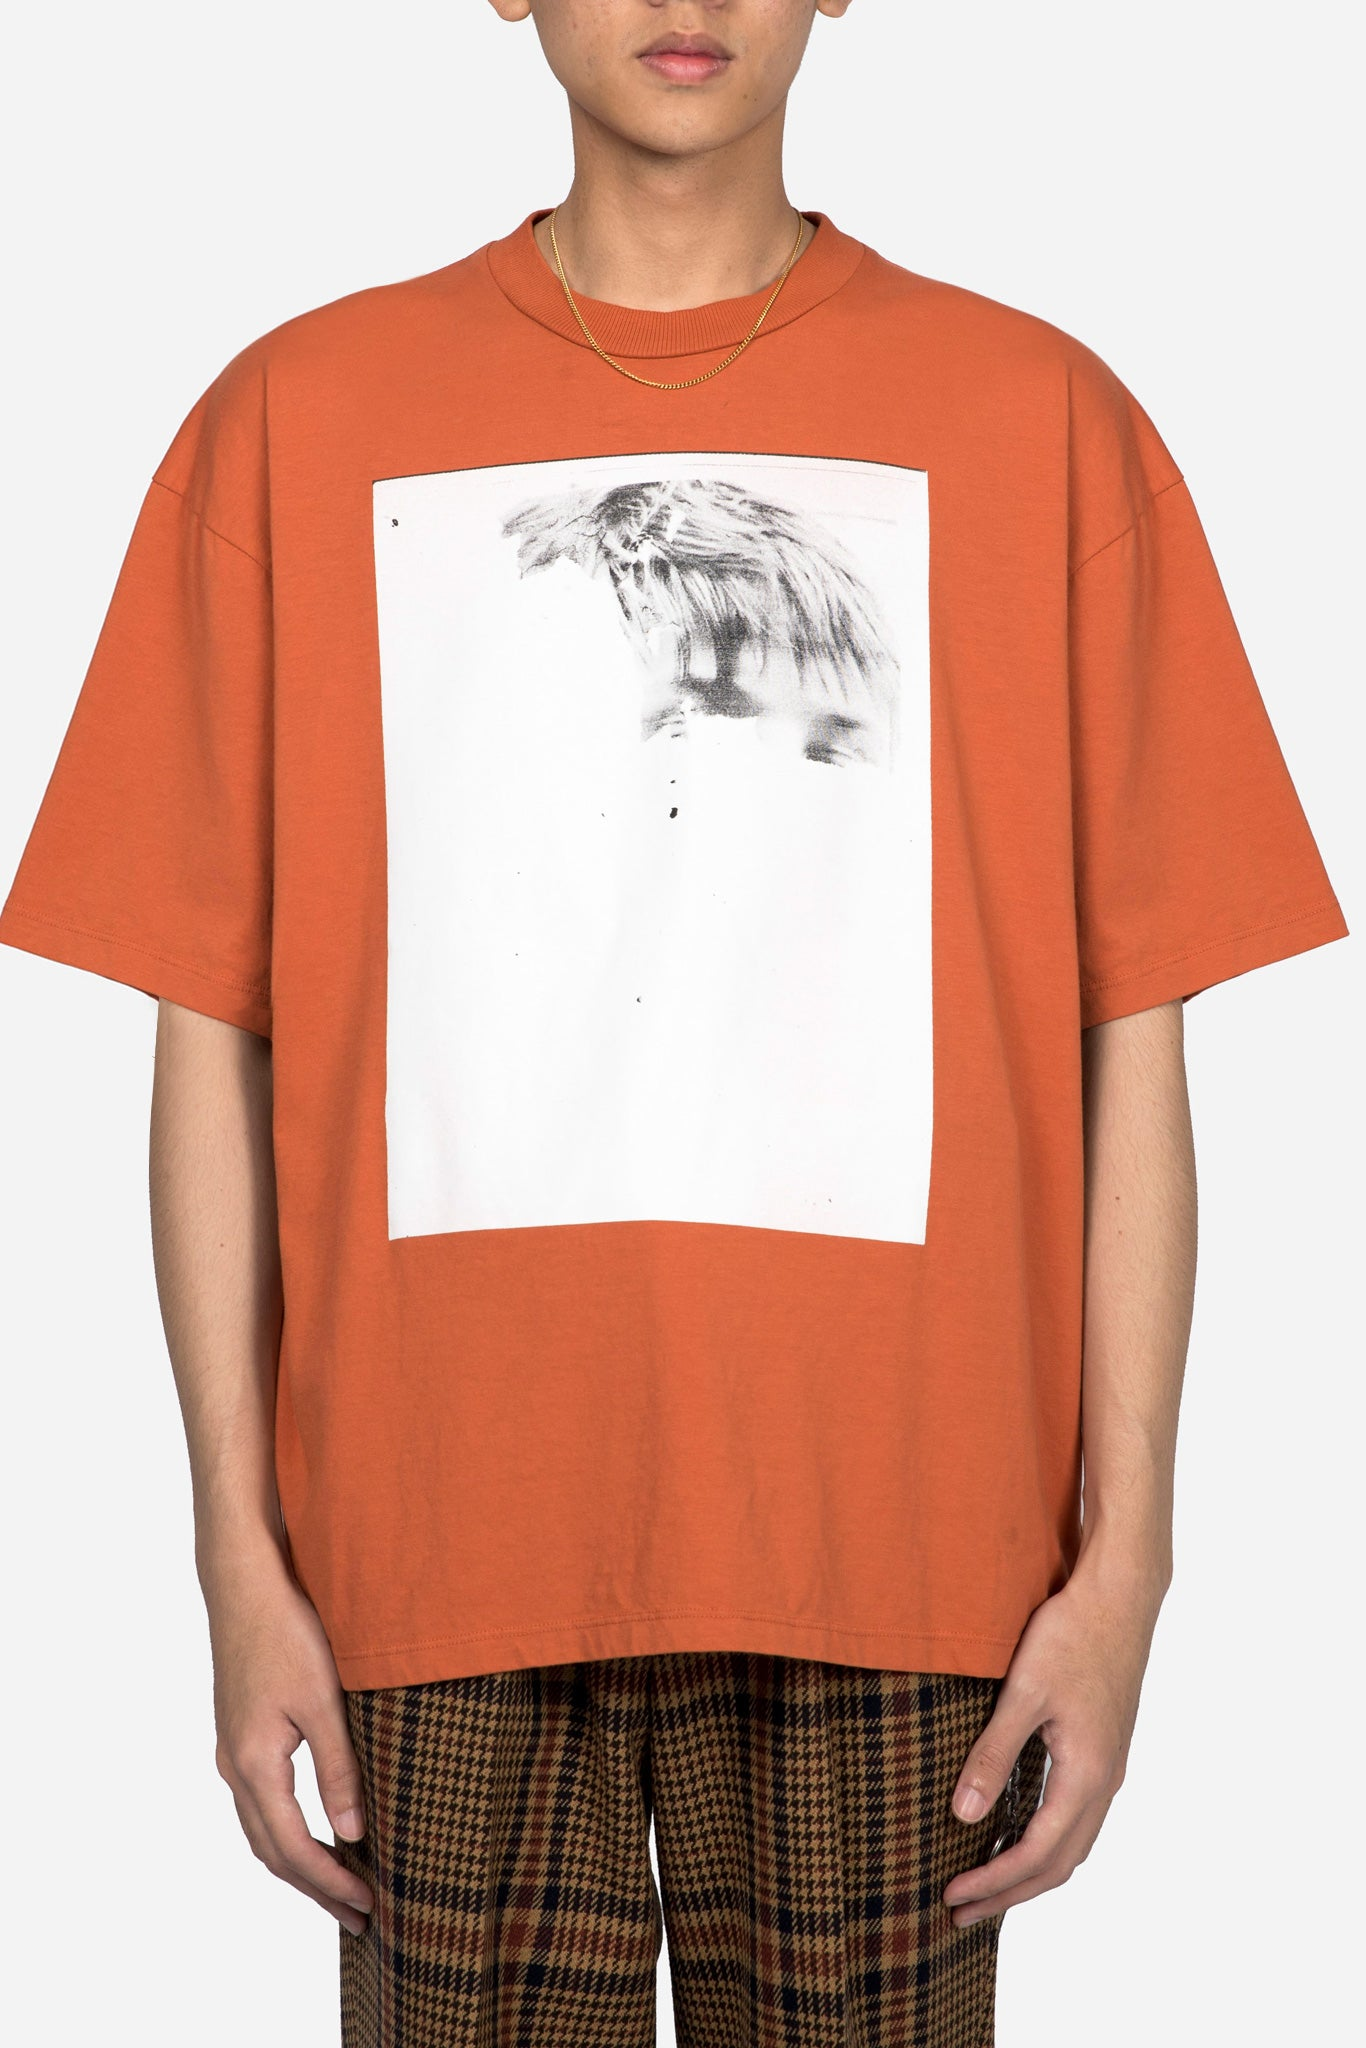 Jersey Darts T-shirt W/ Print 11 Half Face Orange